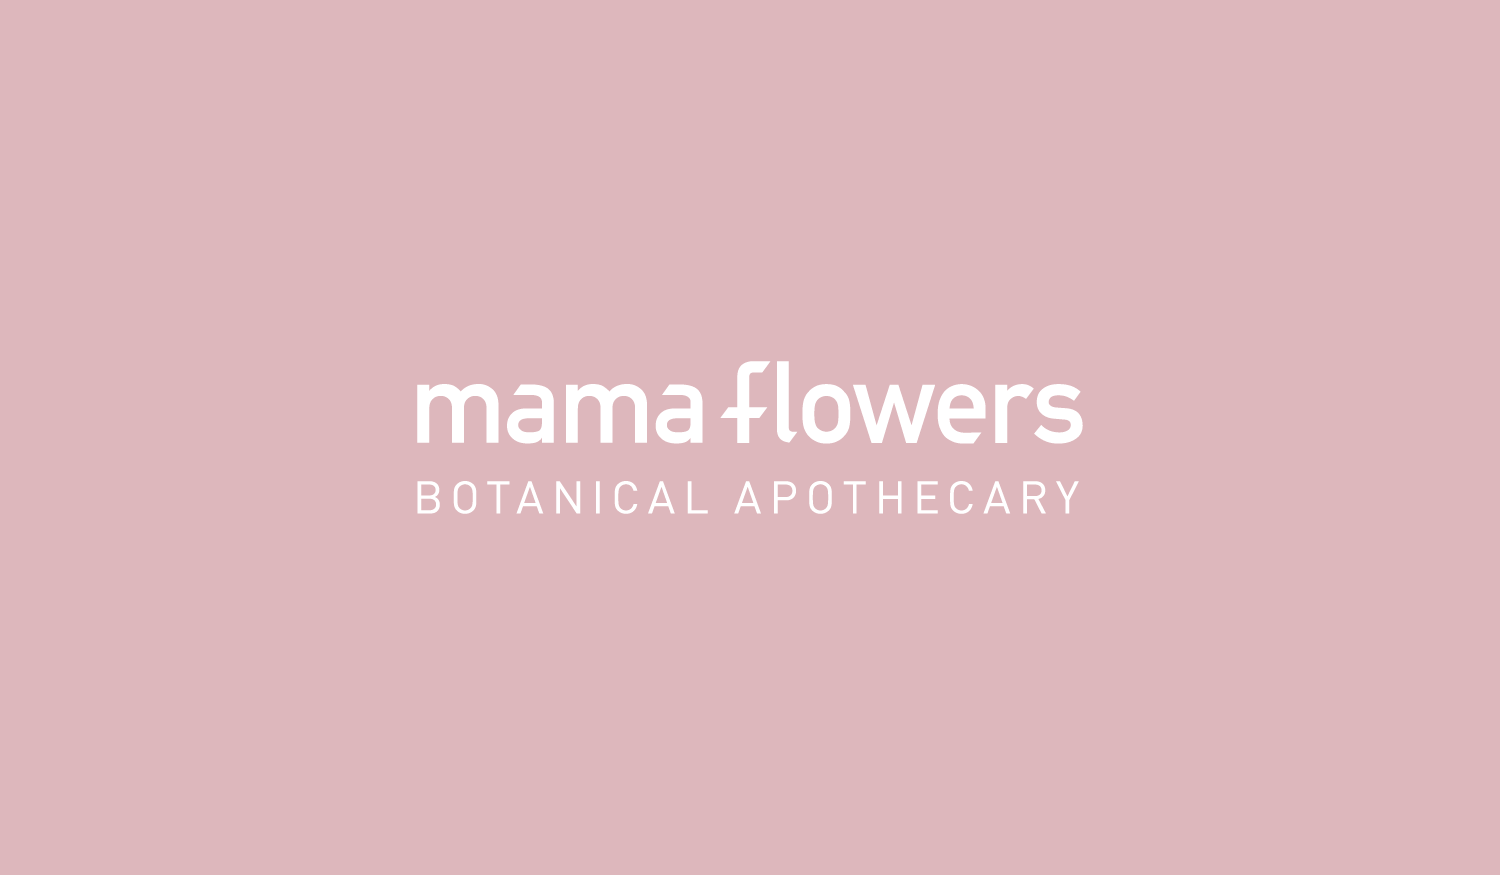 Mama Flowers visual identity logotype